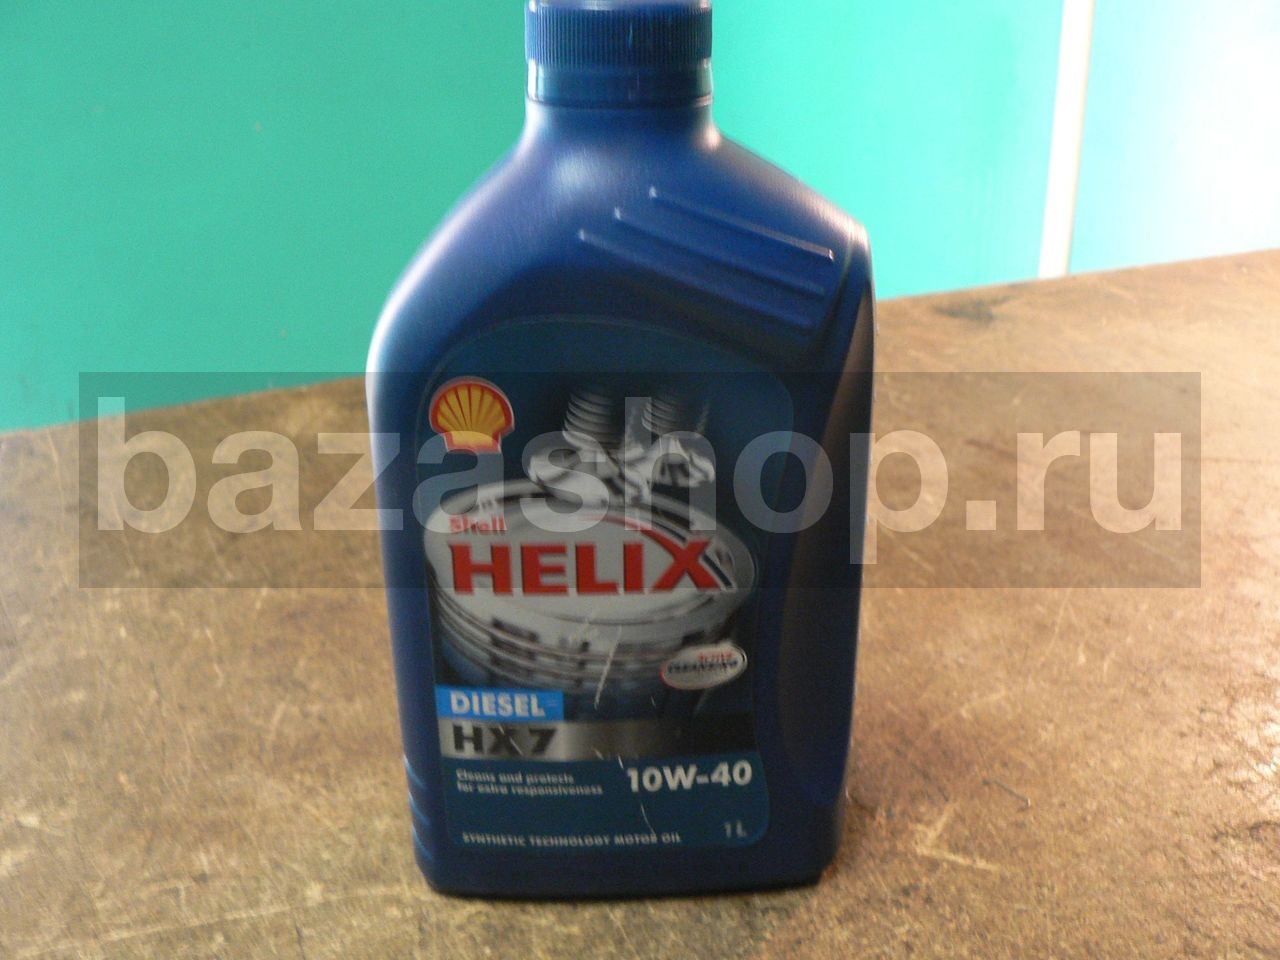 МАСЛО МОТОРНОЕ SHELL/Helix Diesel HX7 10W/40 (1л) / МАСЛО SHELL/Helix Diesel HX7 10W/40 (1л)